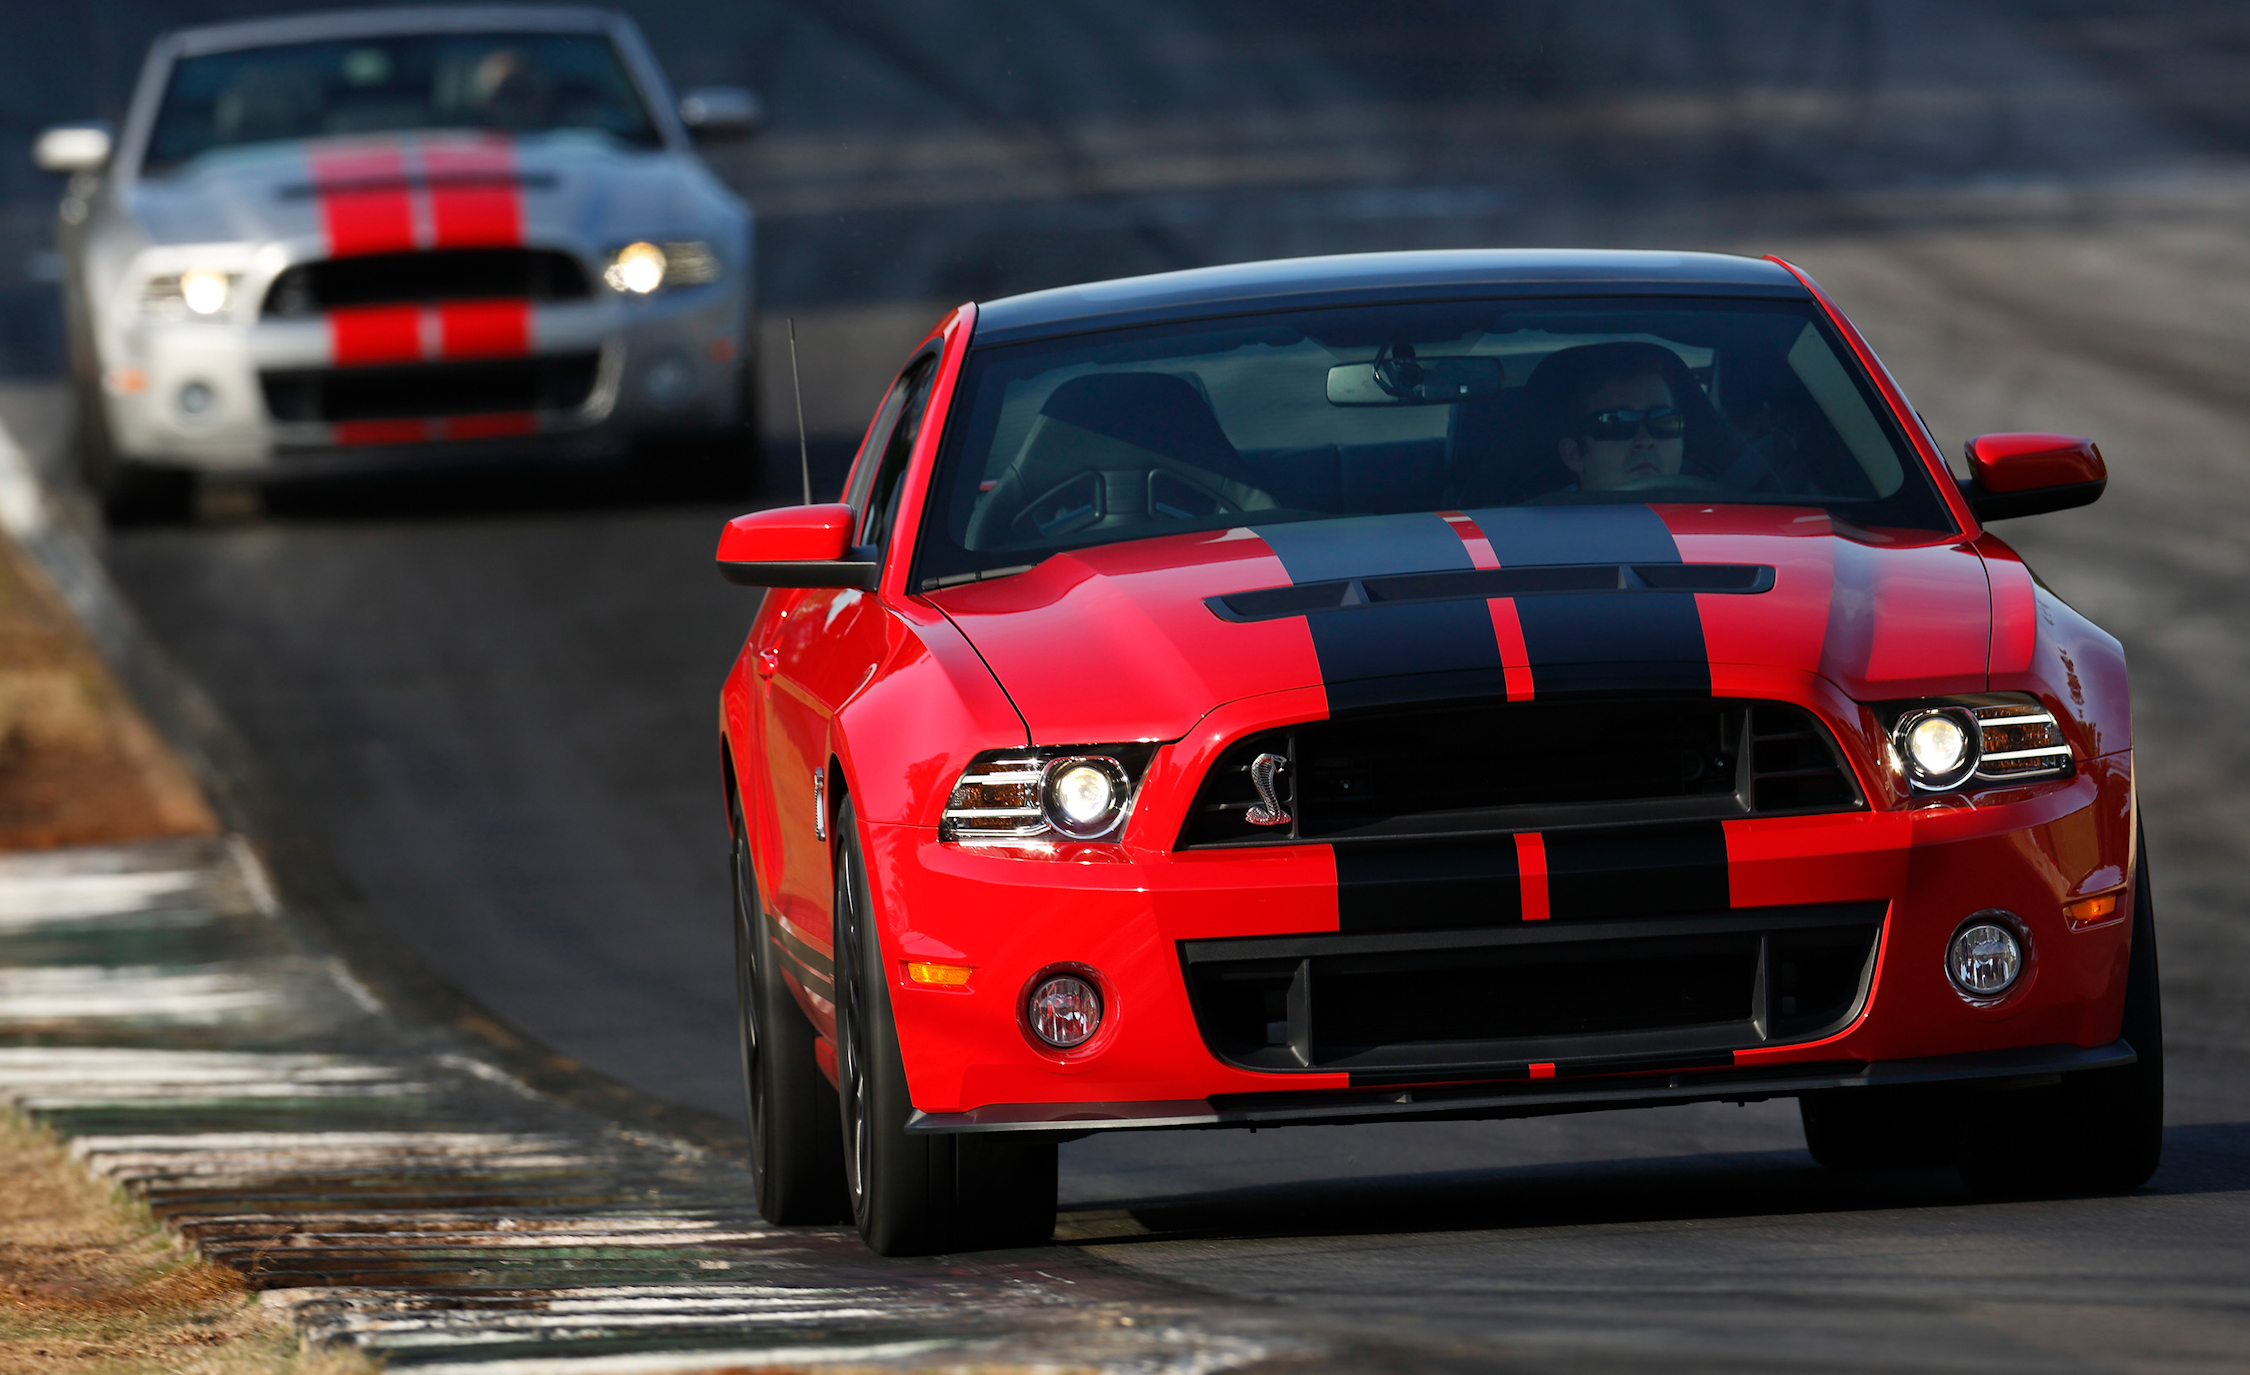 2013 Ford Mustang Shelby GT500 Red Exterior Front (View 46 of 47)